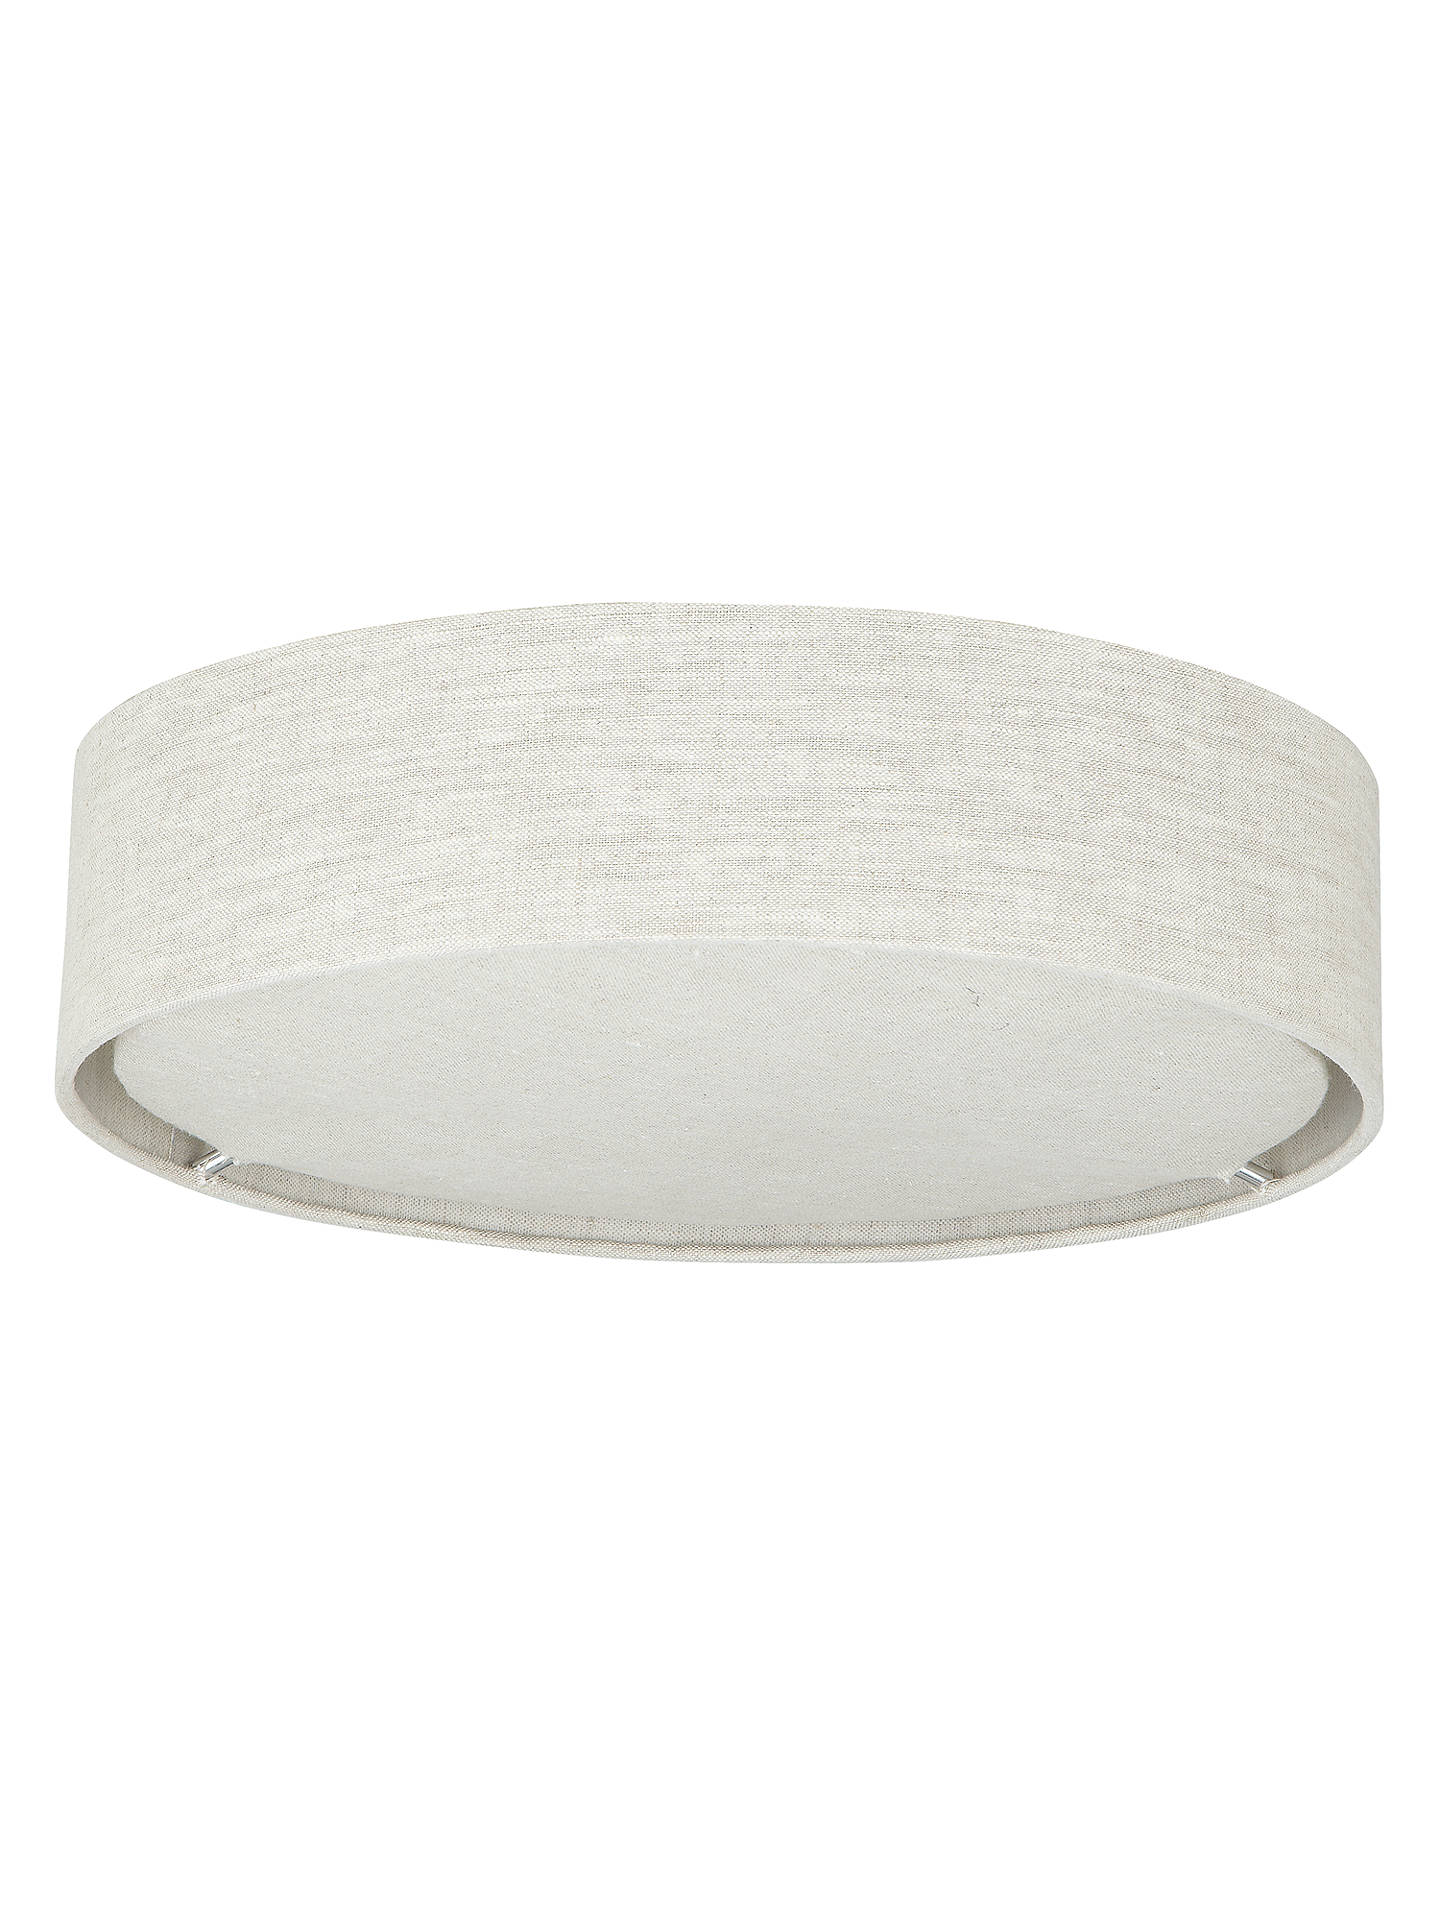 BuyJohn Lewis & Partners Samantha Linen Flush Ceiling Light Online at johnlewis.com